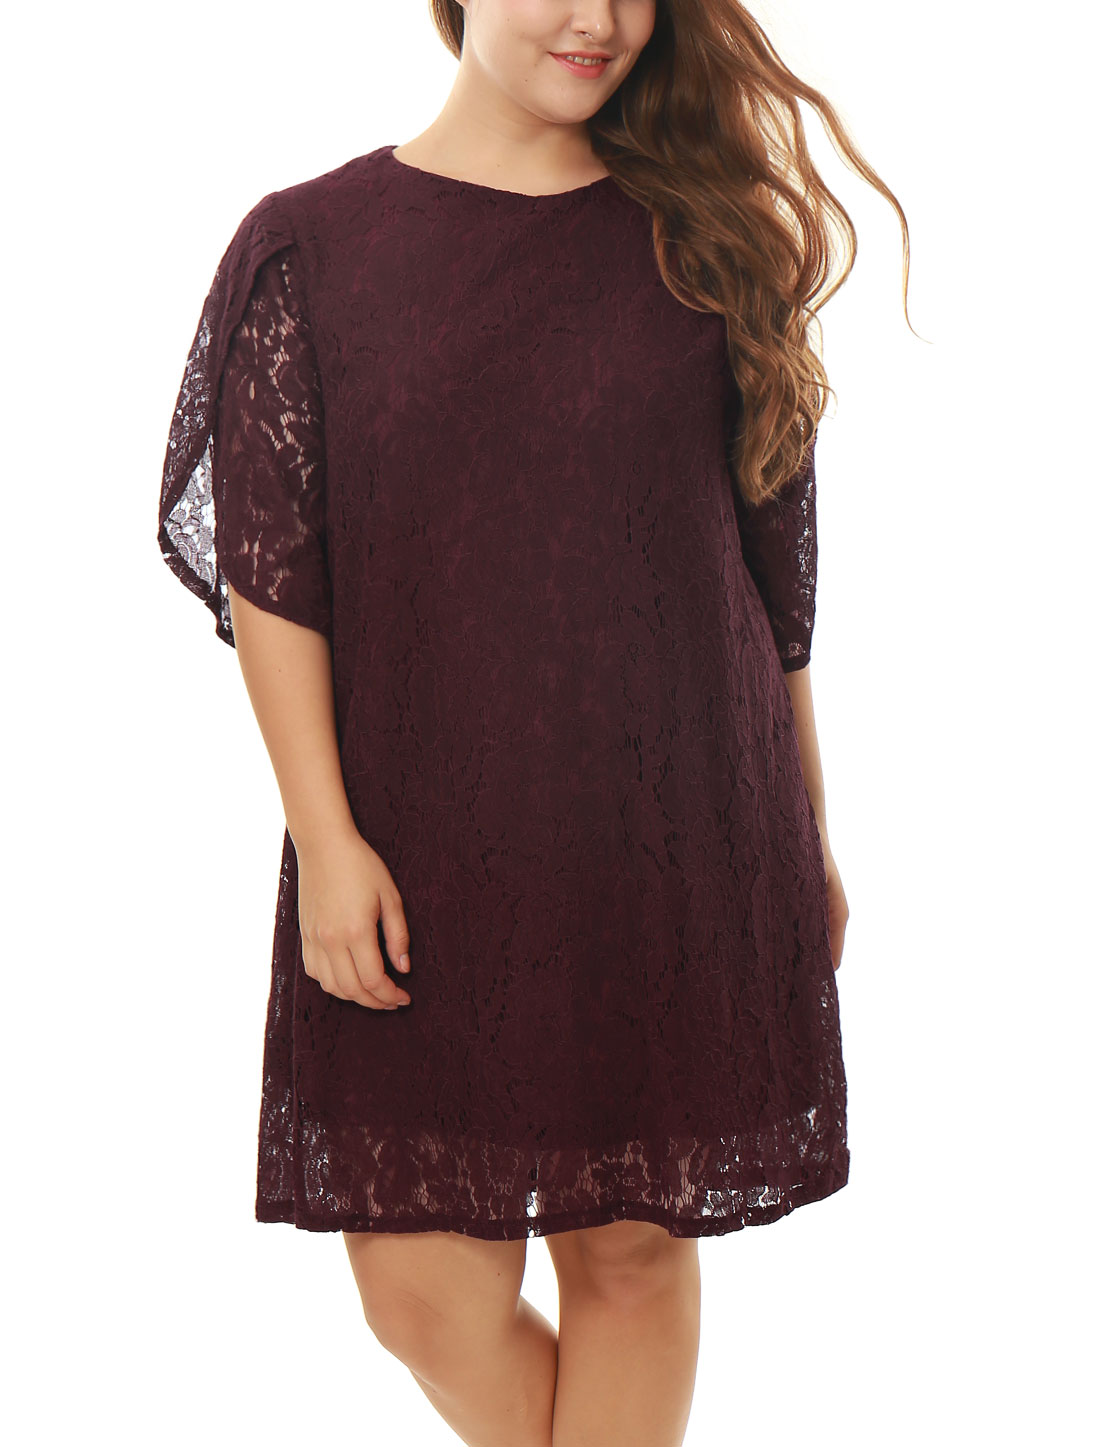 Women Plus Size Tulip Sleeves Floral Lace Shift Dress Purple 3X